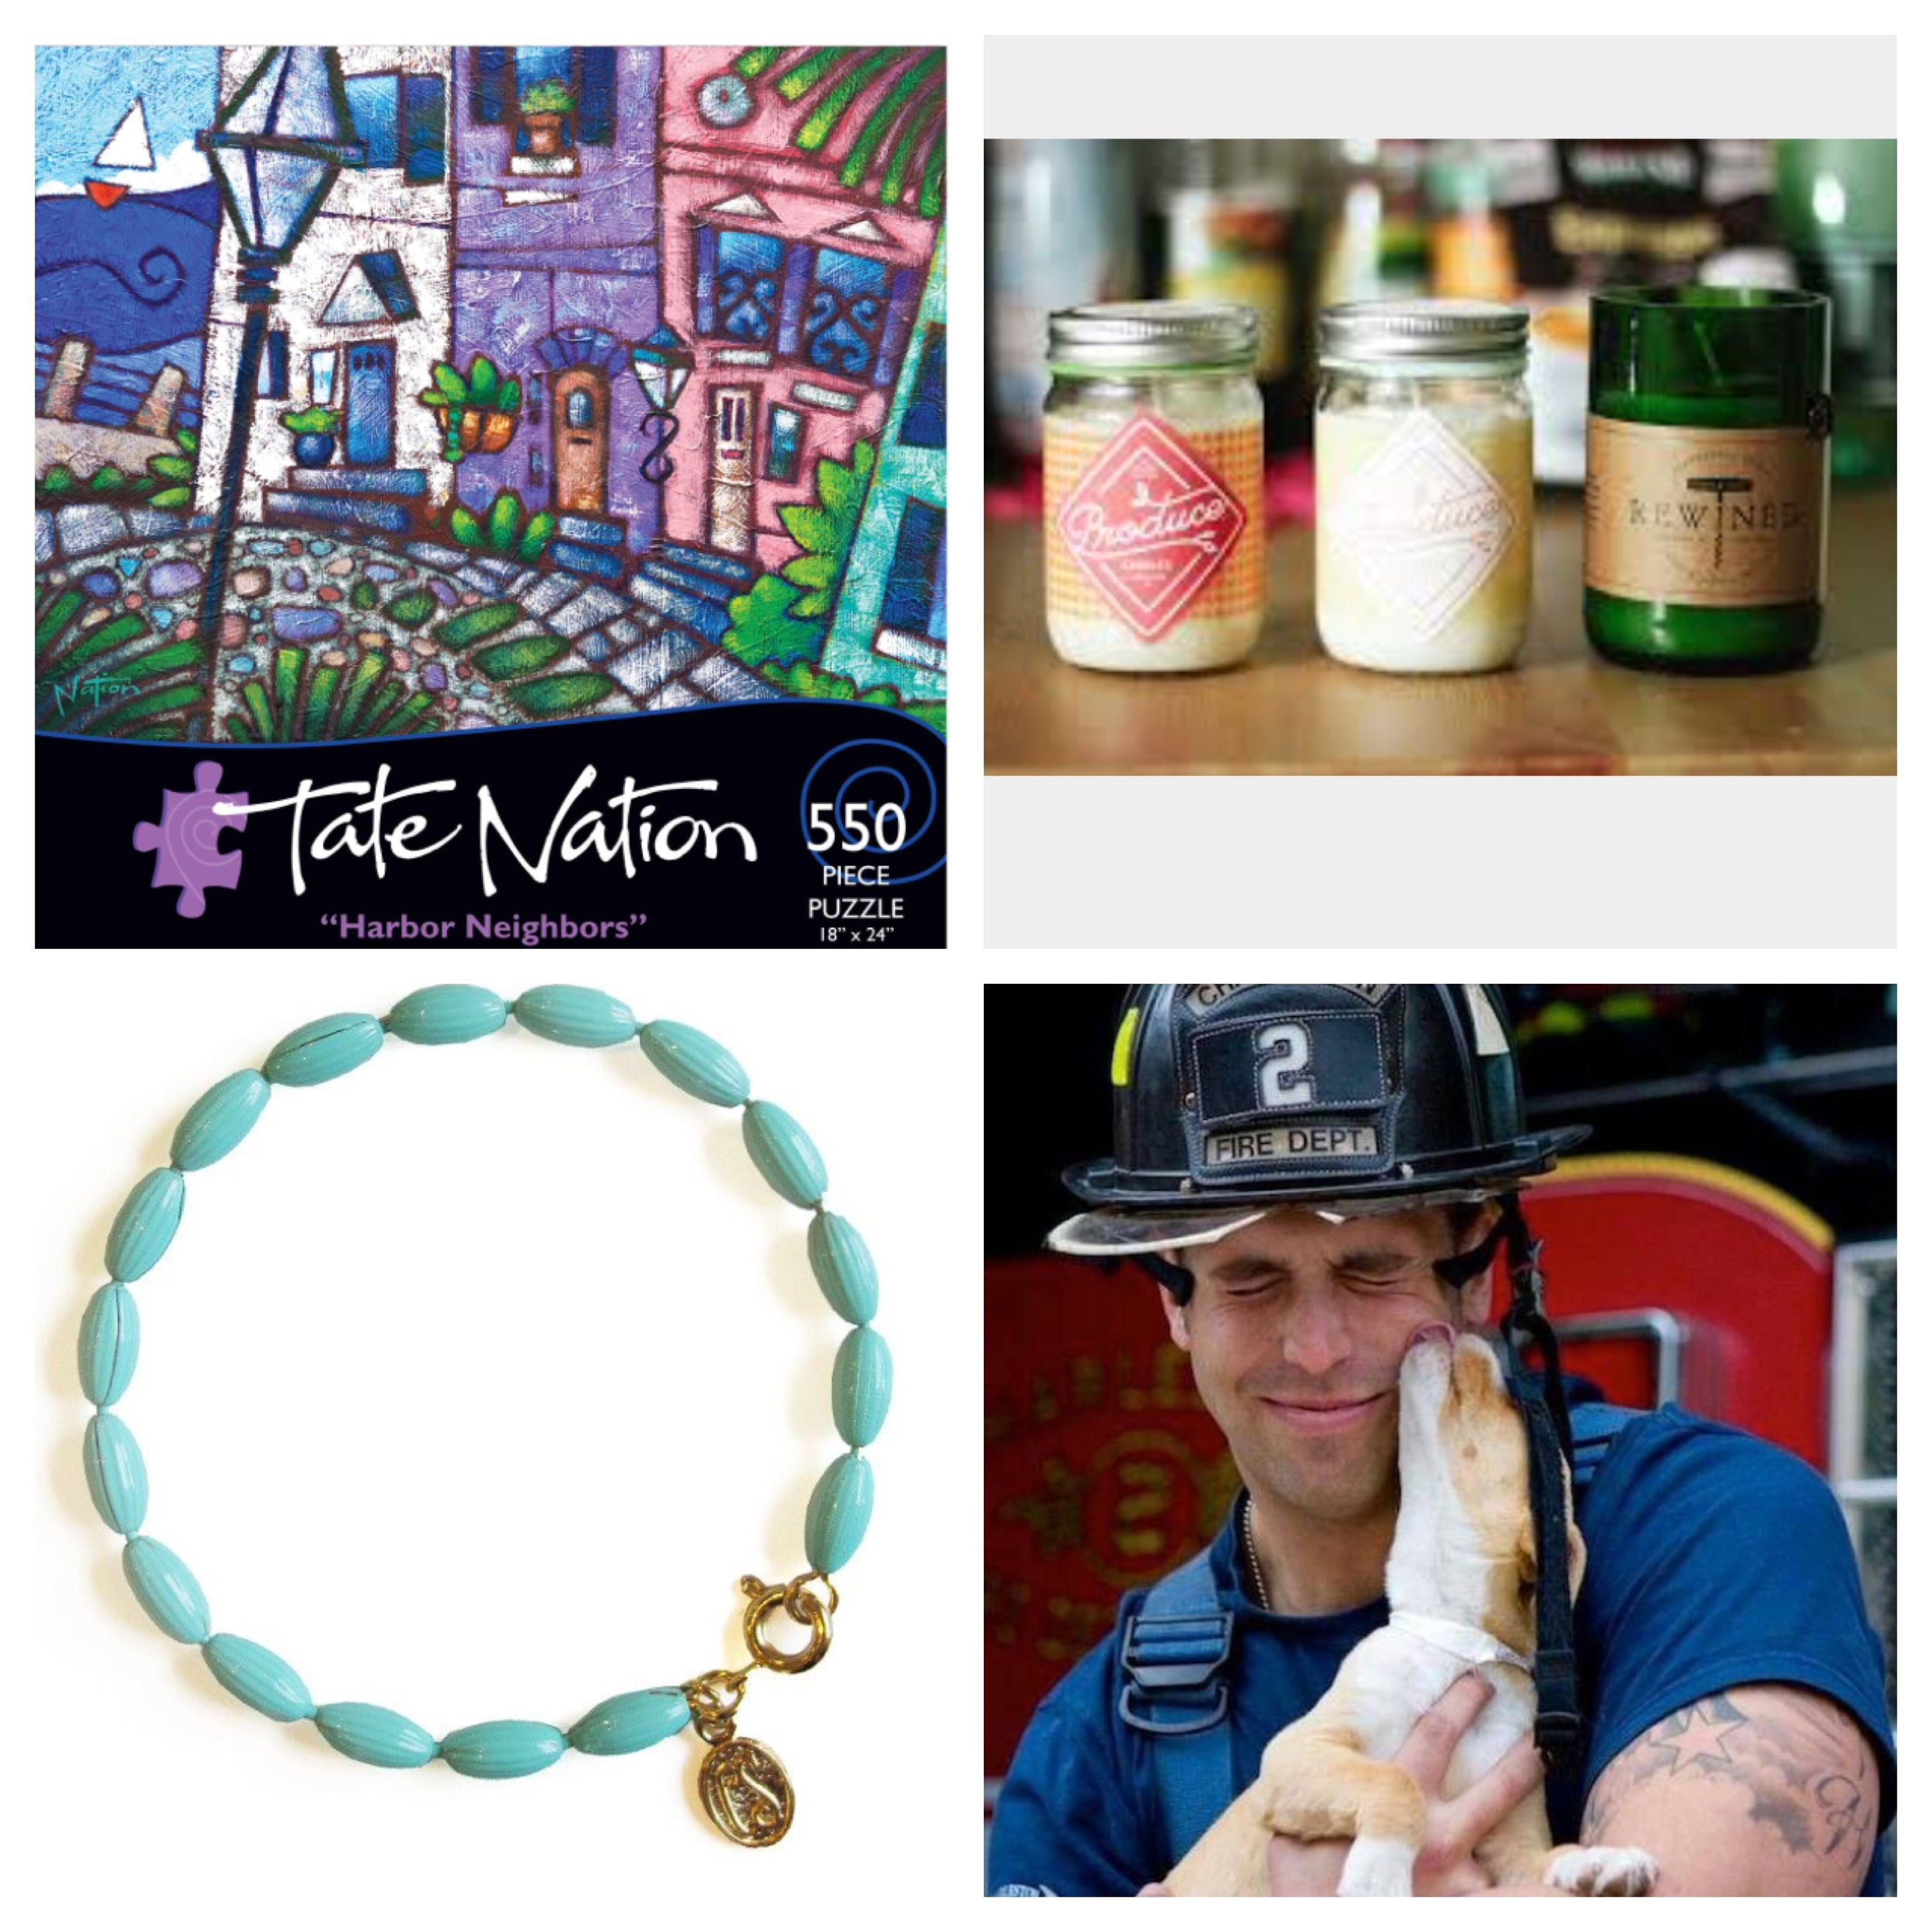 Clockwise: Tate Nation Puzzle, Produce and Rewined Candles from Candlefish, Rice Bead Jewelry, Charleston Animal Society Fireman